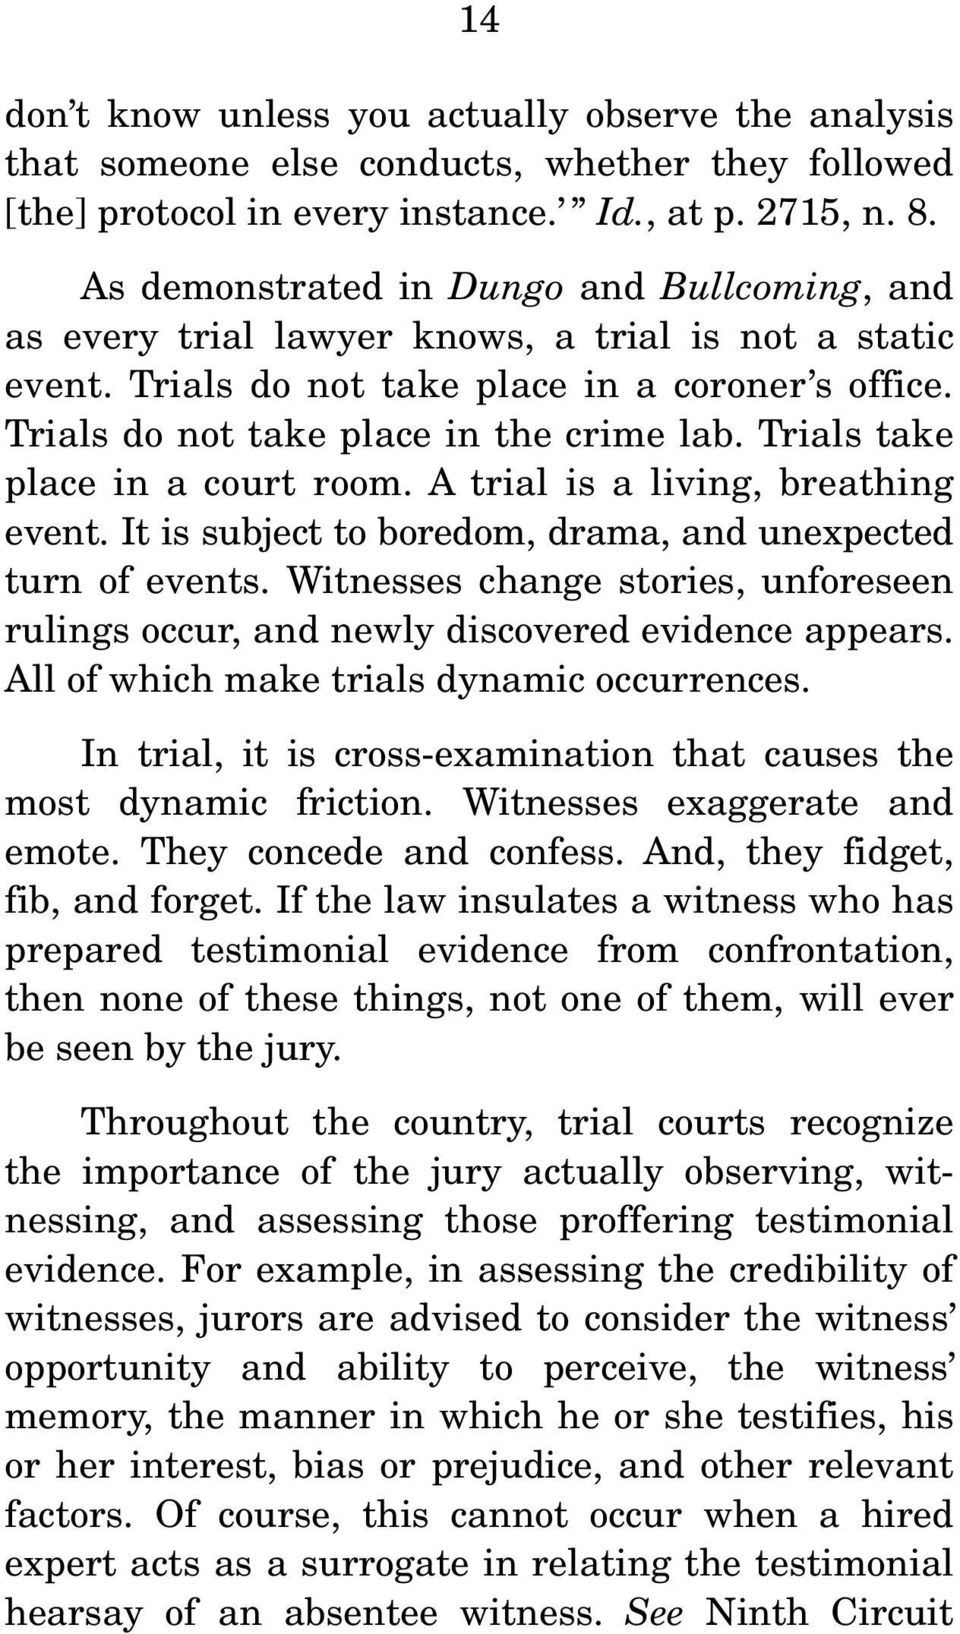 Trials take place in a court room. A trial is a living, breathing event. It is subject to boredom, drama, and unexpected turn of events.